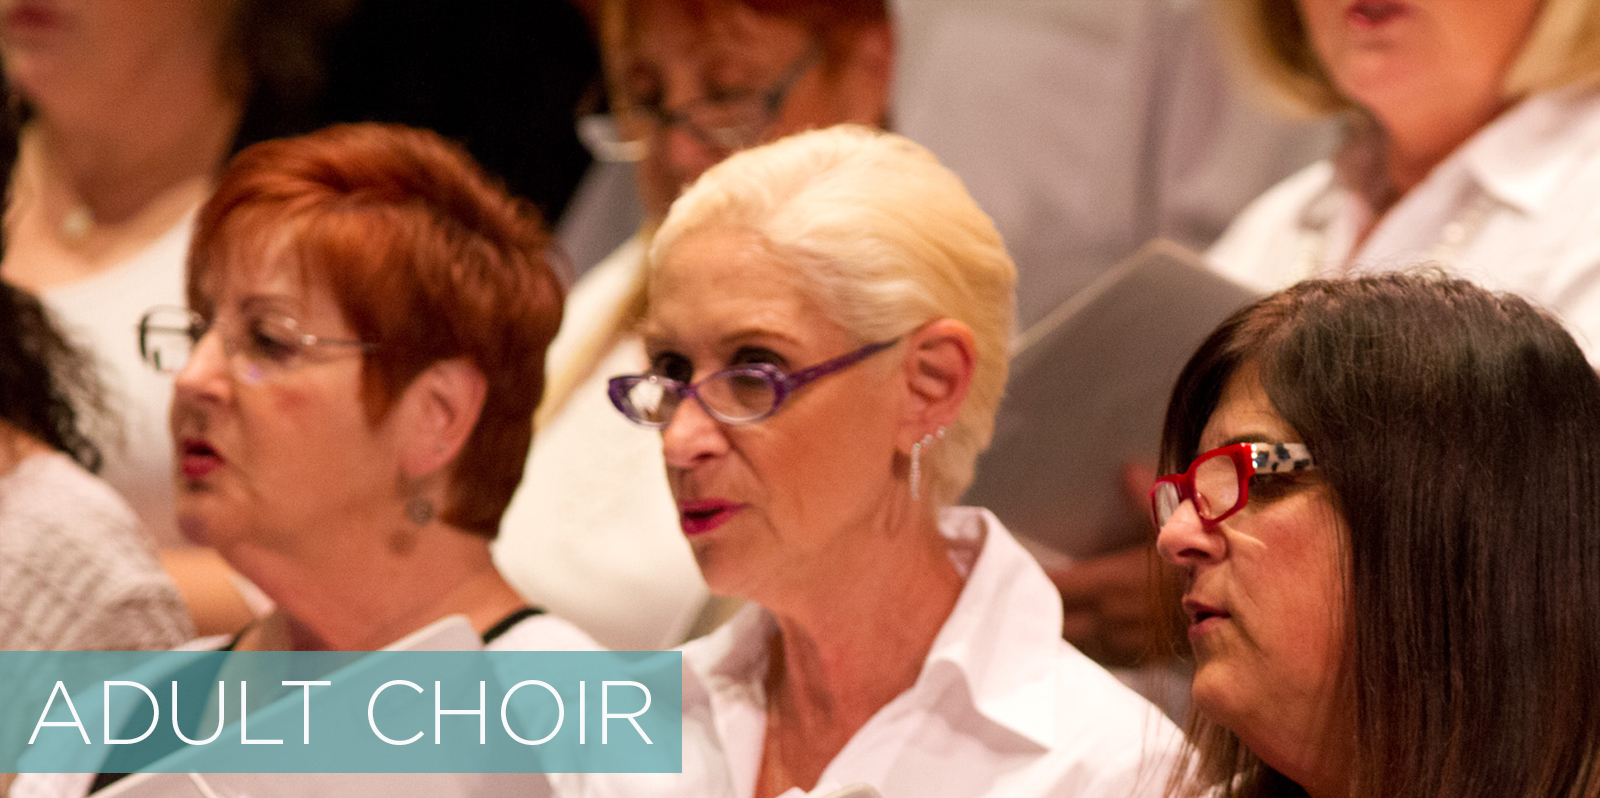 /home/templeis/public_html/images/header_image/1562962876header_image1453252526header_imageLP_01_adult_choir.jpg.